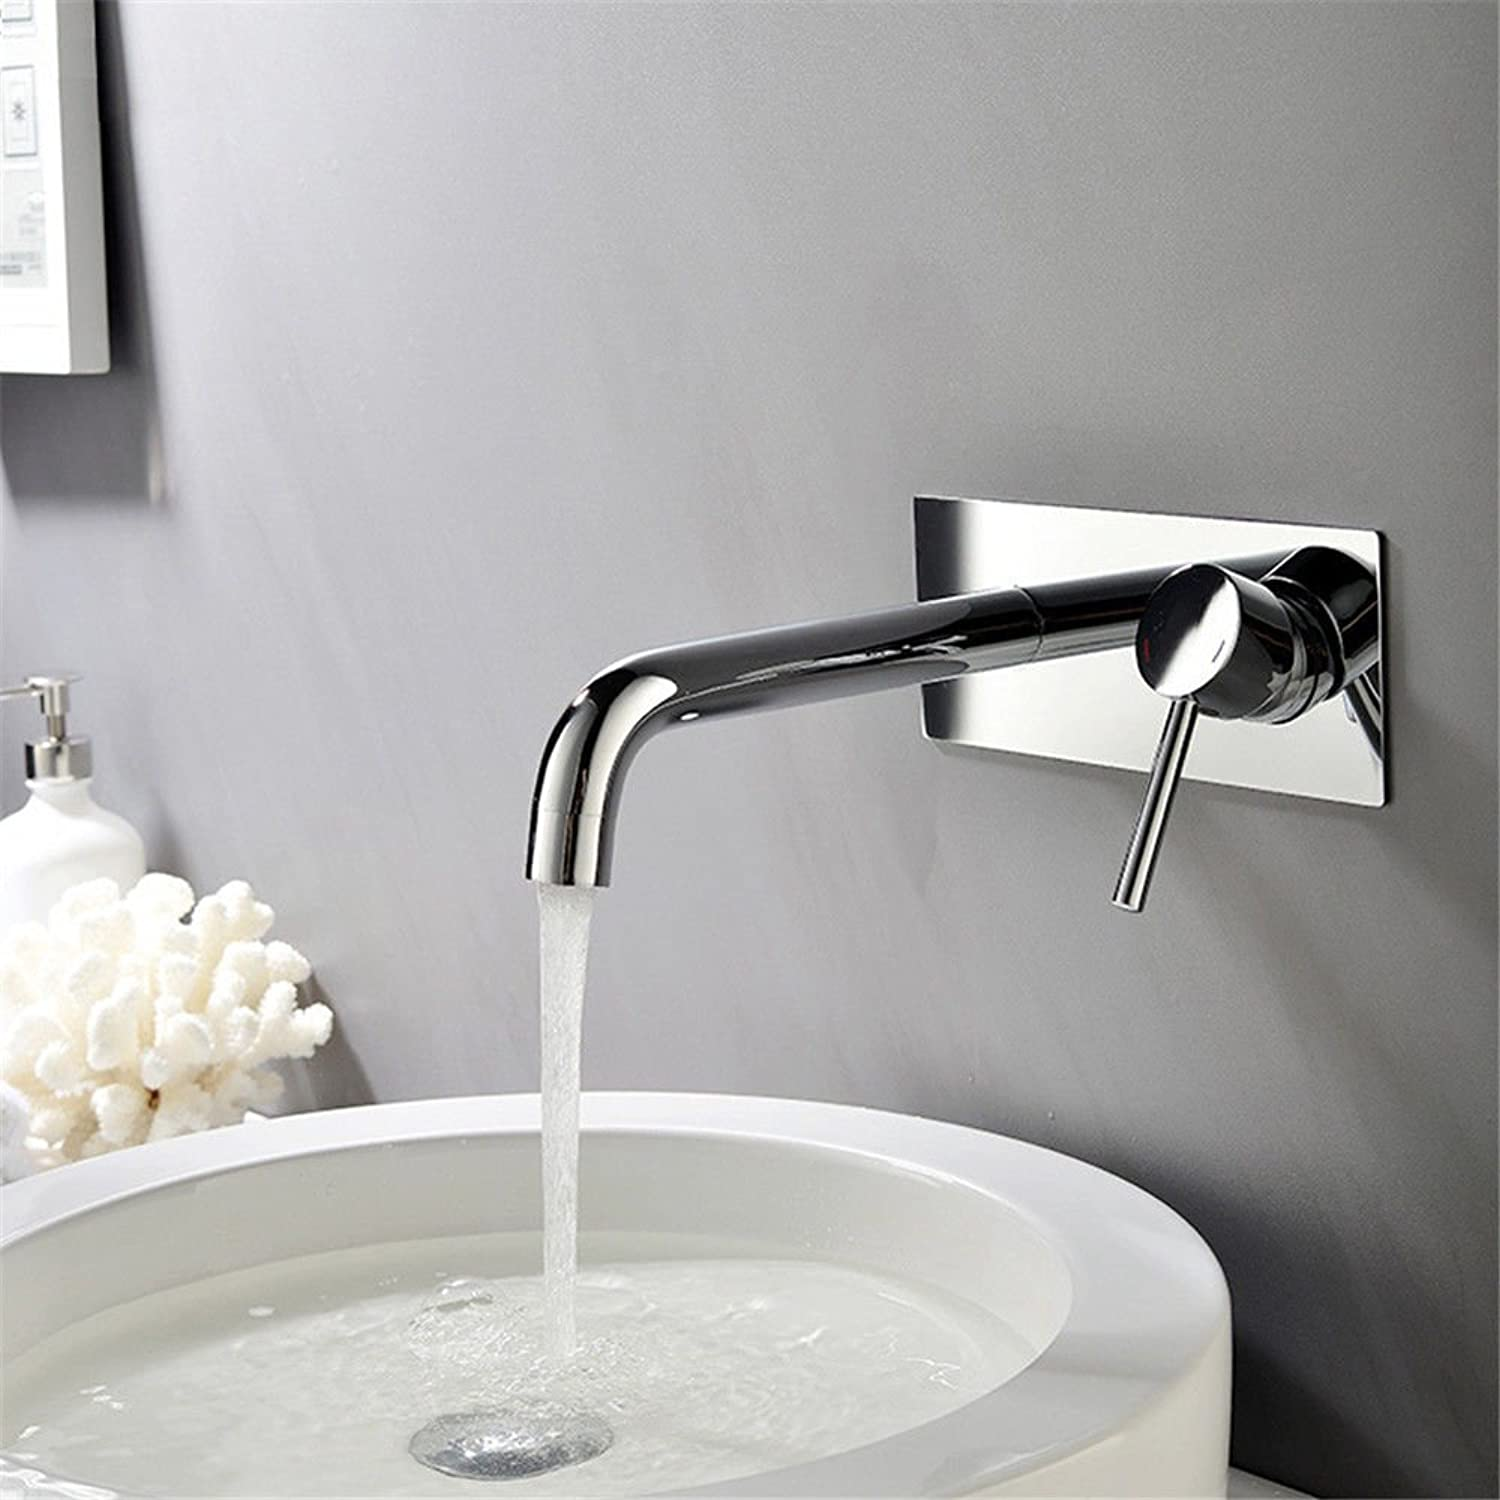 DOJOF Bathroom Sink Faucet Basin Mixer Tap Brass Hot and Cold Water Concea LED in-Wall Single Lever Basin Sink Tap Bathroom Bar Faucet